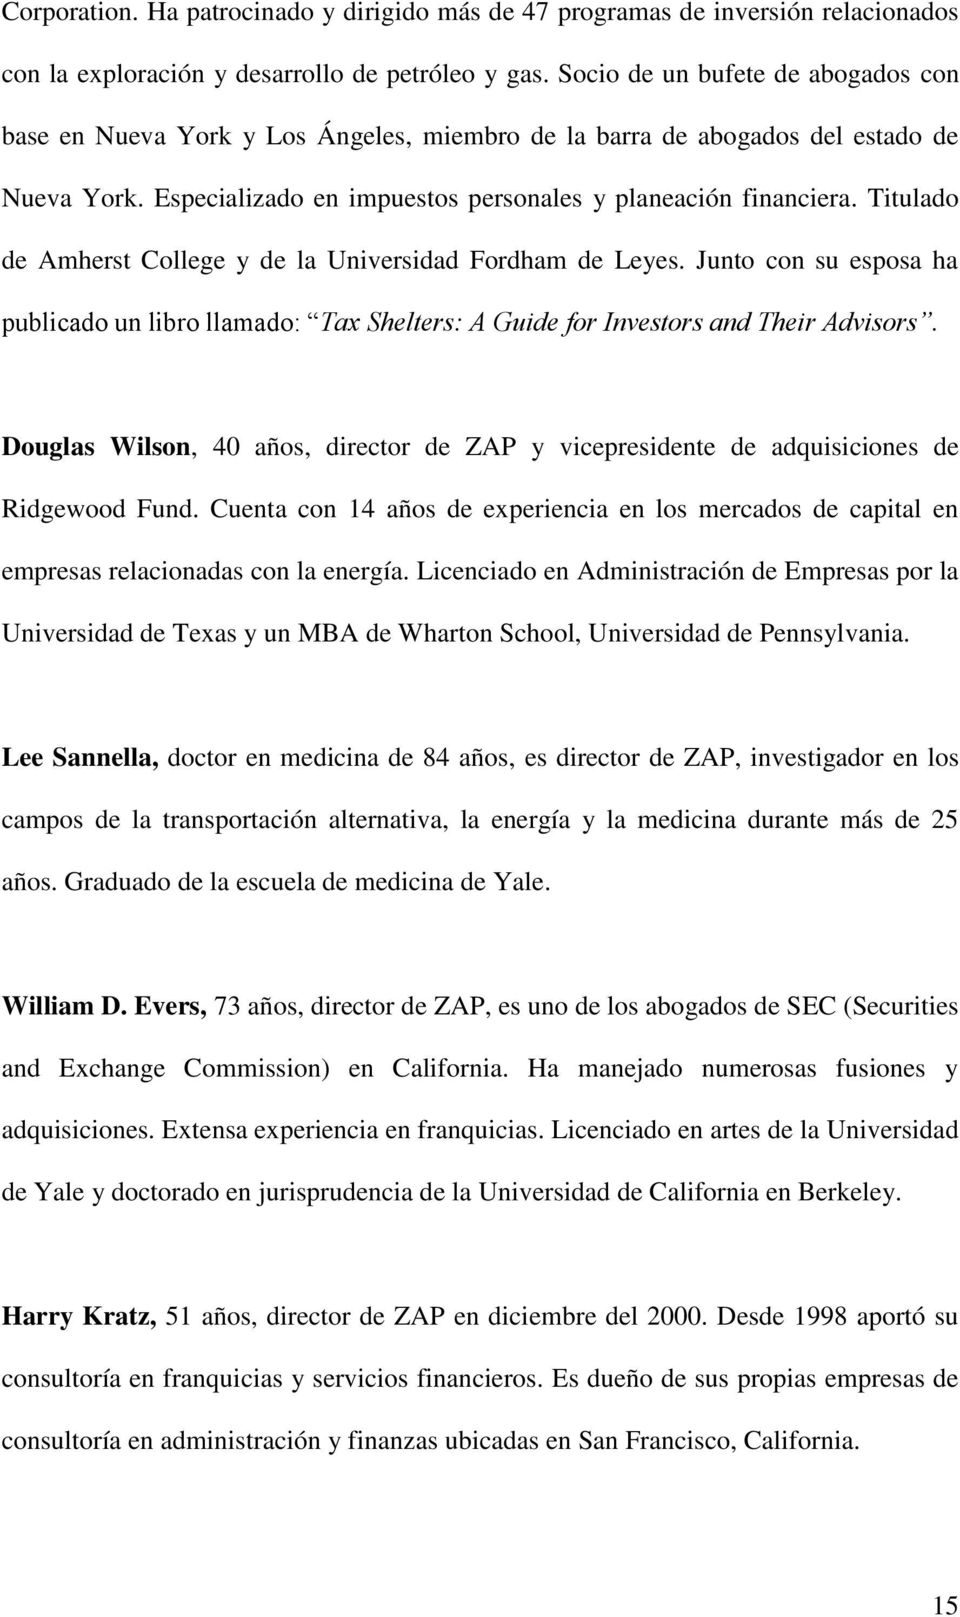 Titulado de Amherst College y de la Universidad Fordham de Leyes. Junto con su esposa ha publicado un libro llamado: Tax Shelters: A Guide for Investors and Their Advisors.